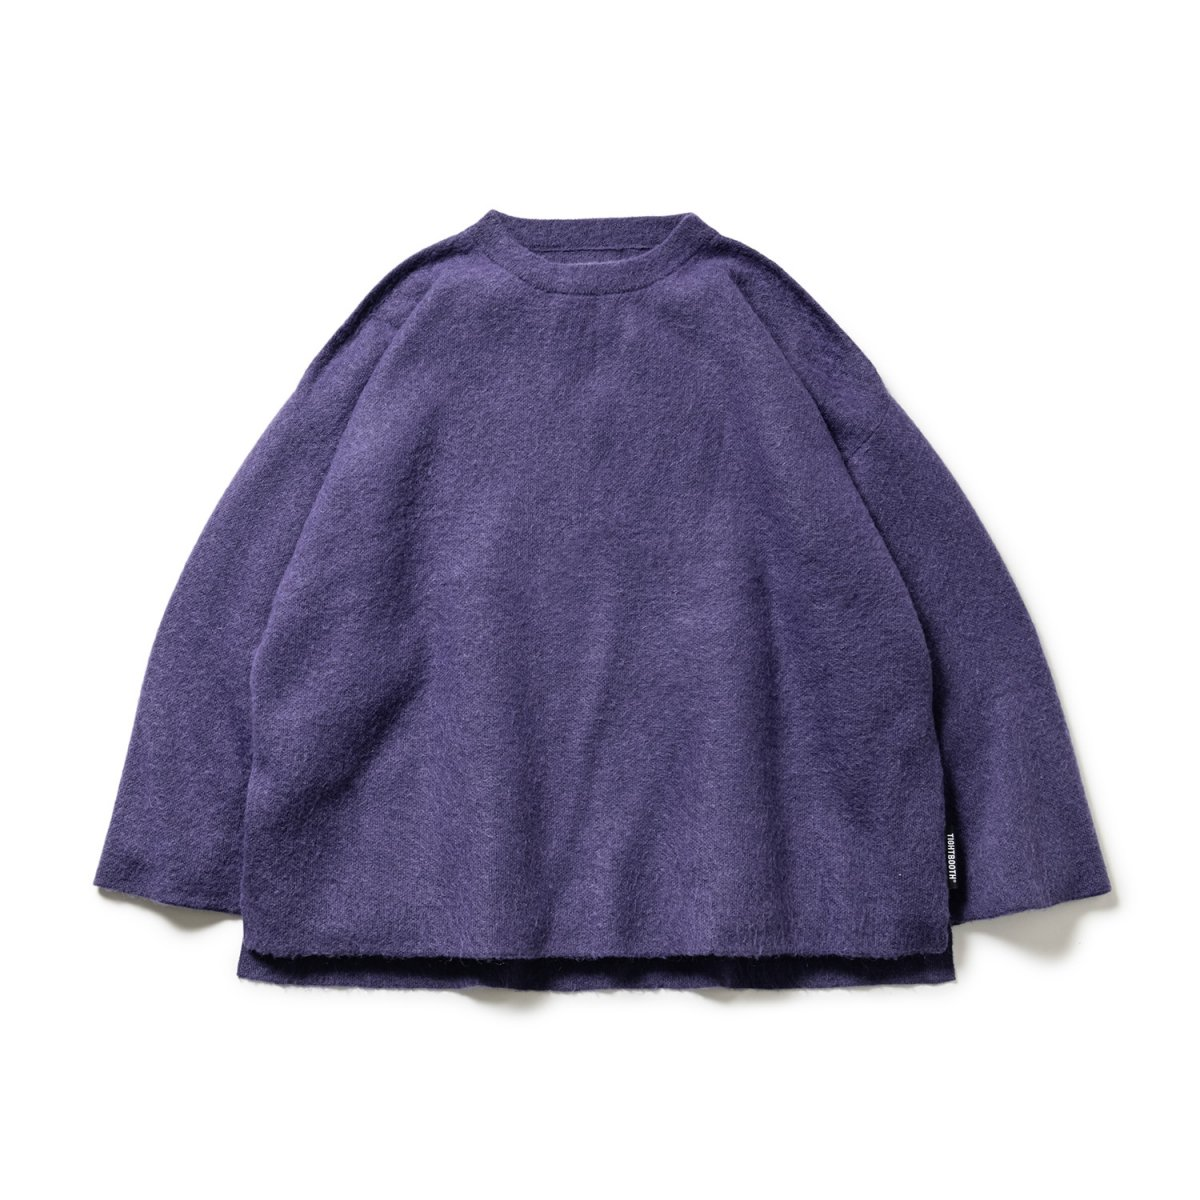 <img class='new_mark_img1' src='https://img.shop-pro.jp/img/new/icons8.gif' style='border:none;display:inline;margin:0px;padding:0px;width:auto;' />【TBPR】Mohair Sweater (Purple)                           </a>             <span class=